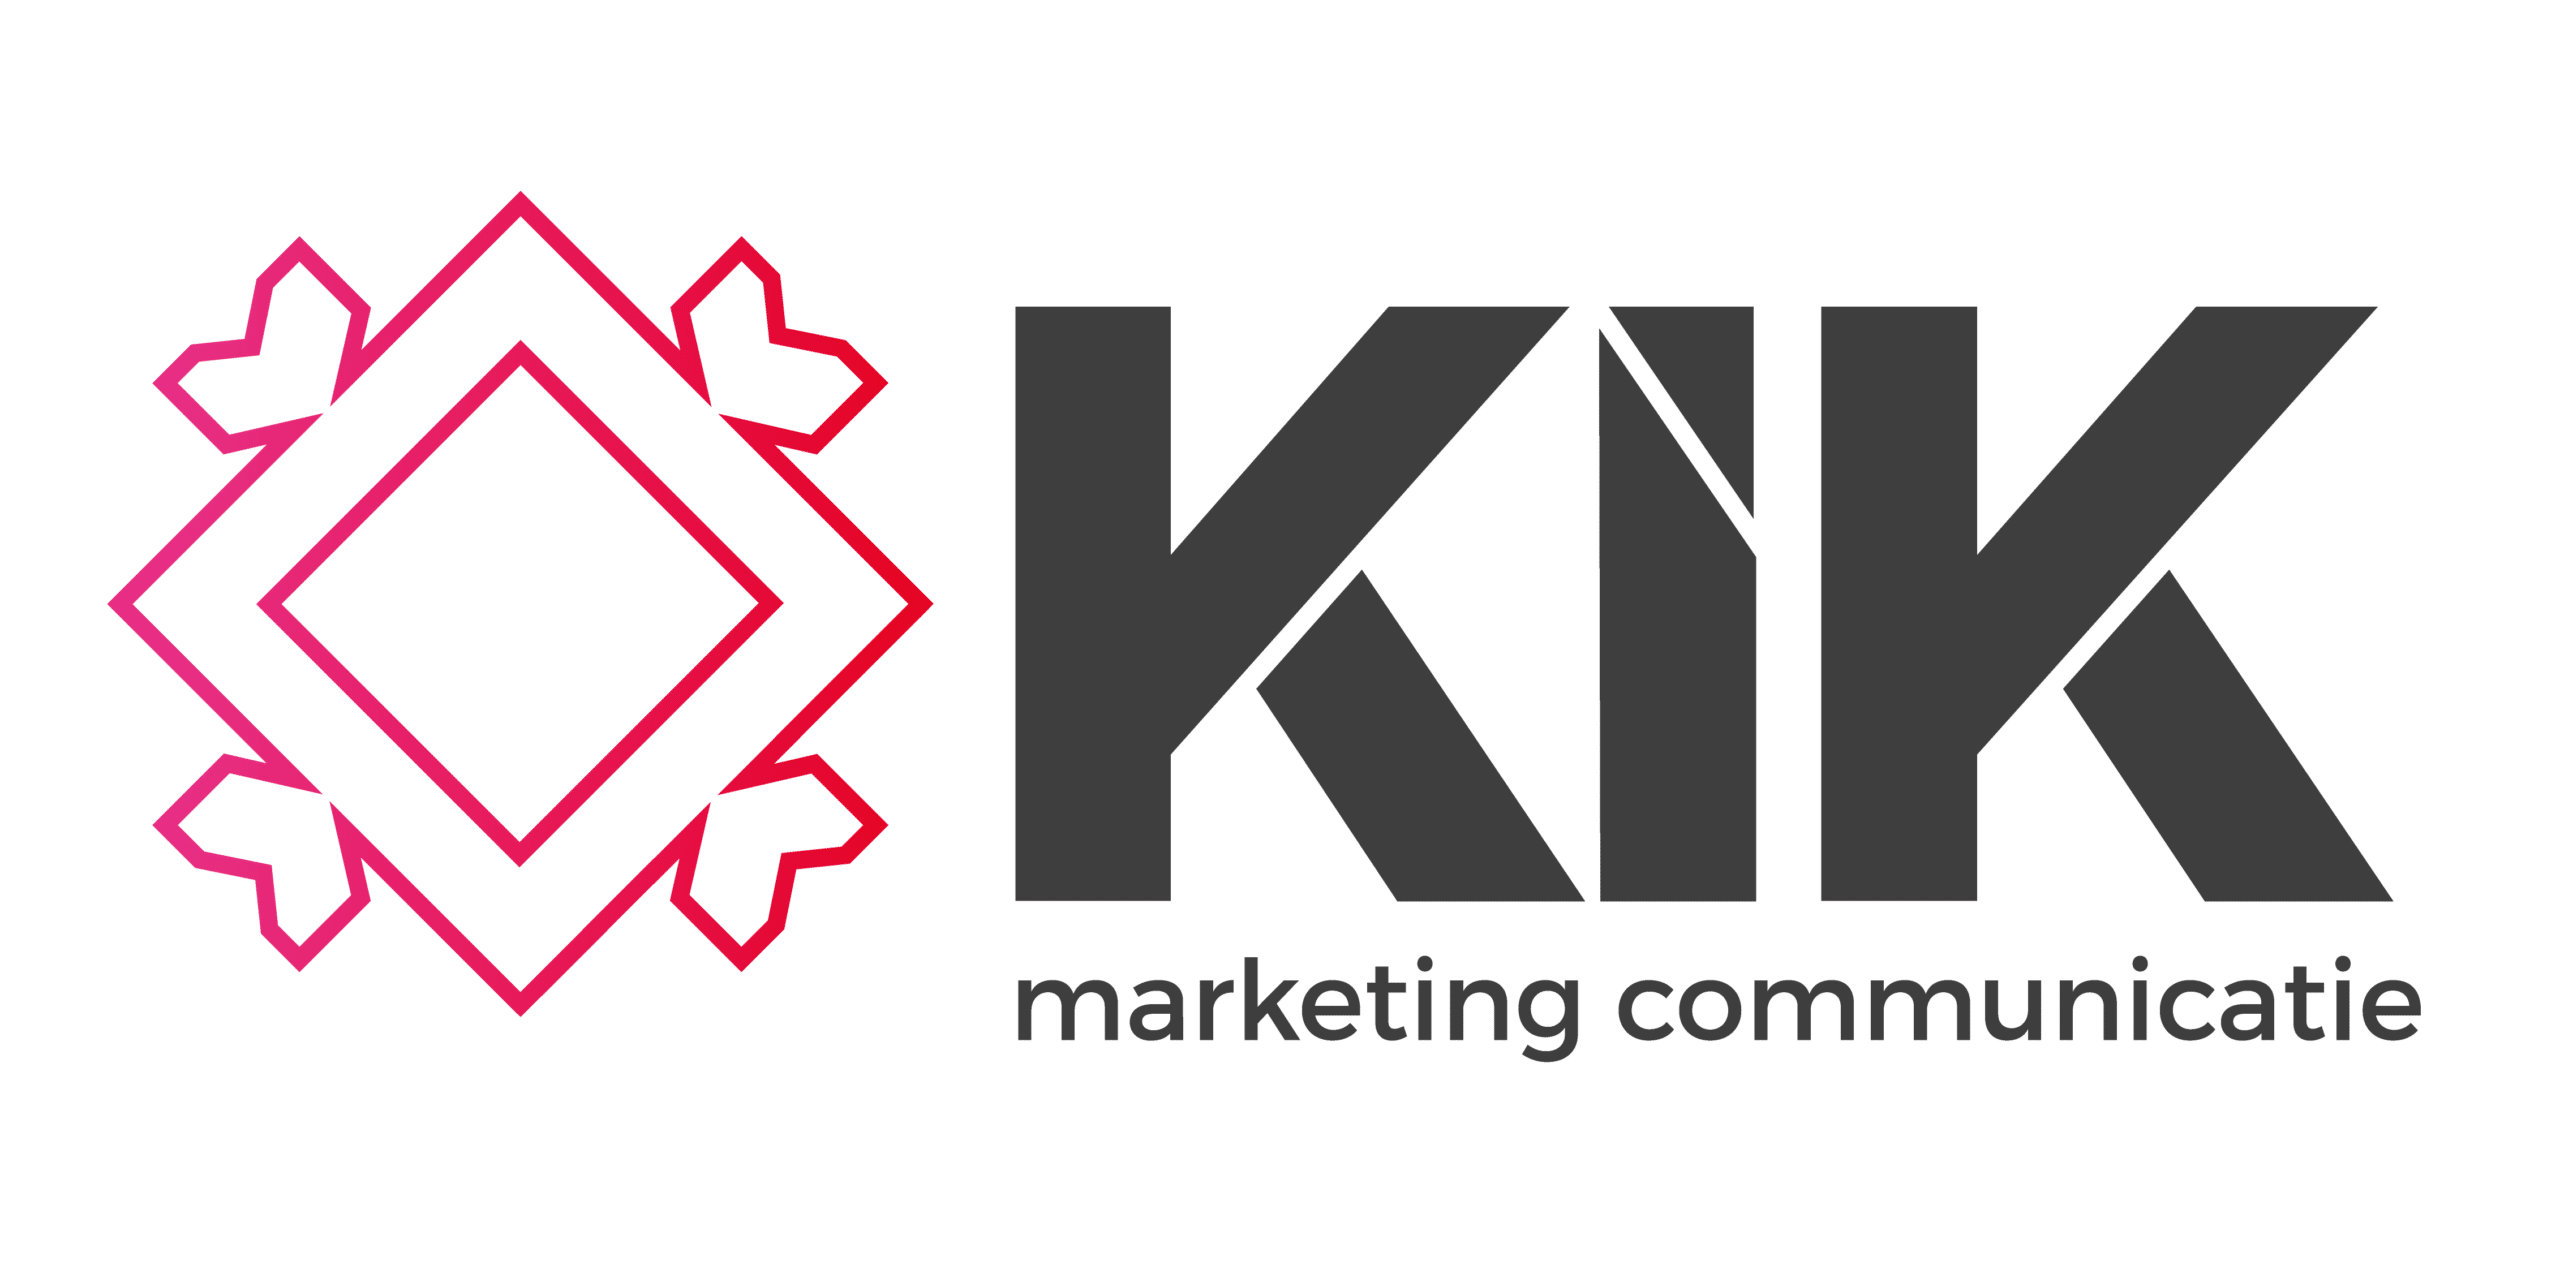 KIK marketing communicatie